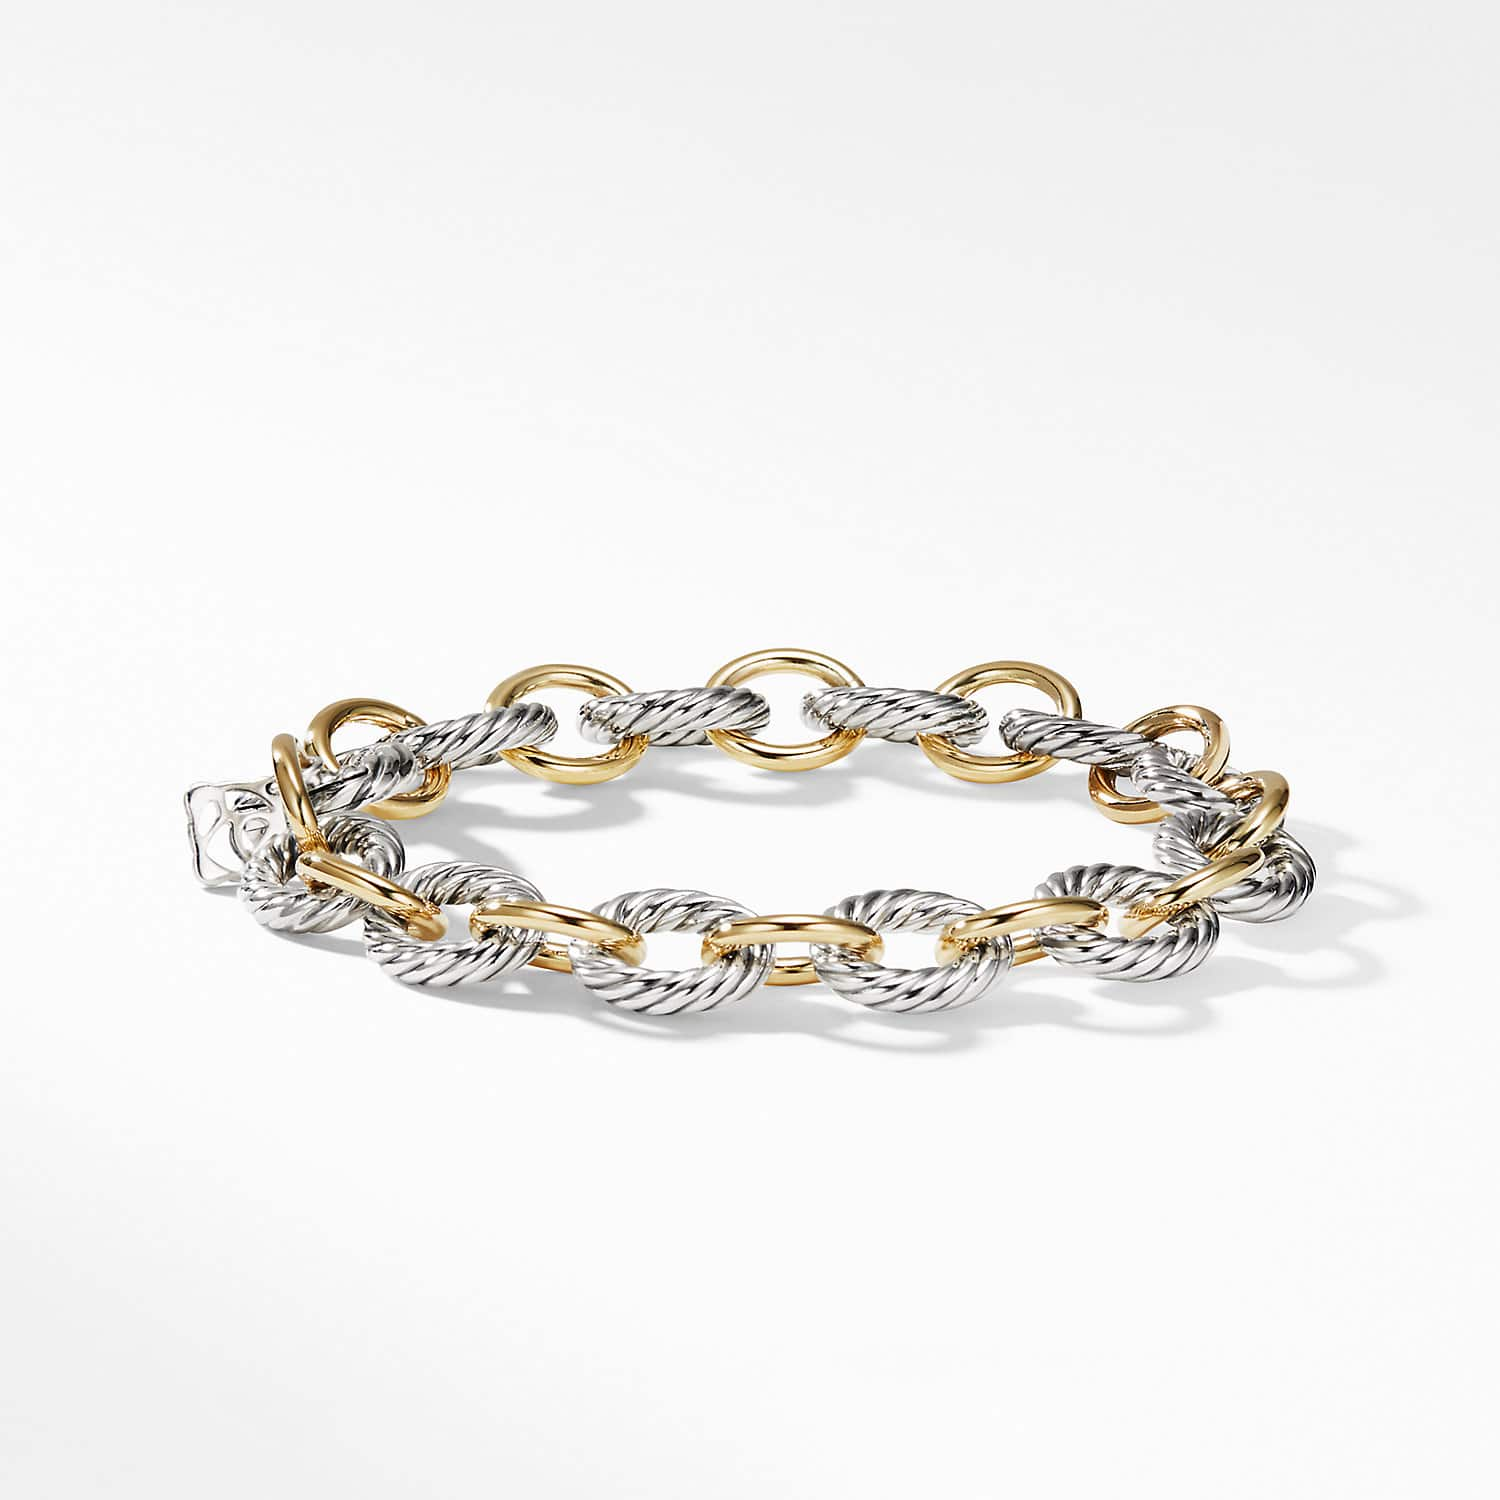 5d4cde168c3 Medium Oval Link Bracelet with 18K Gold Product Image